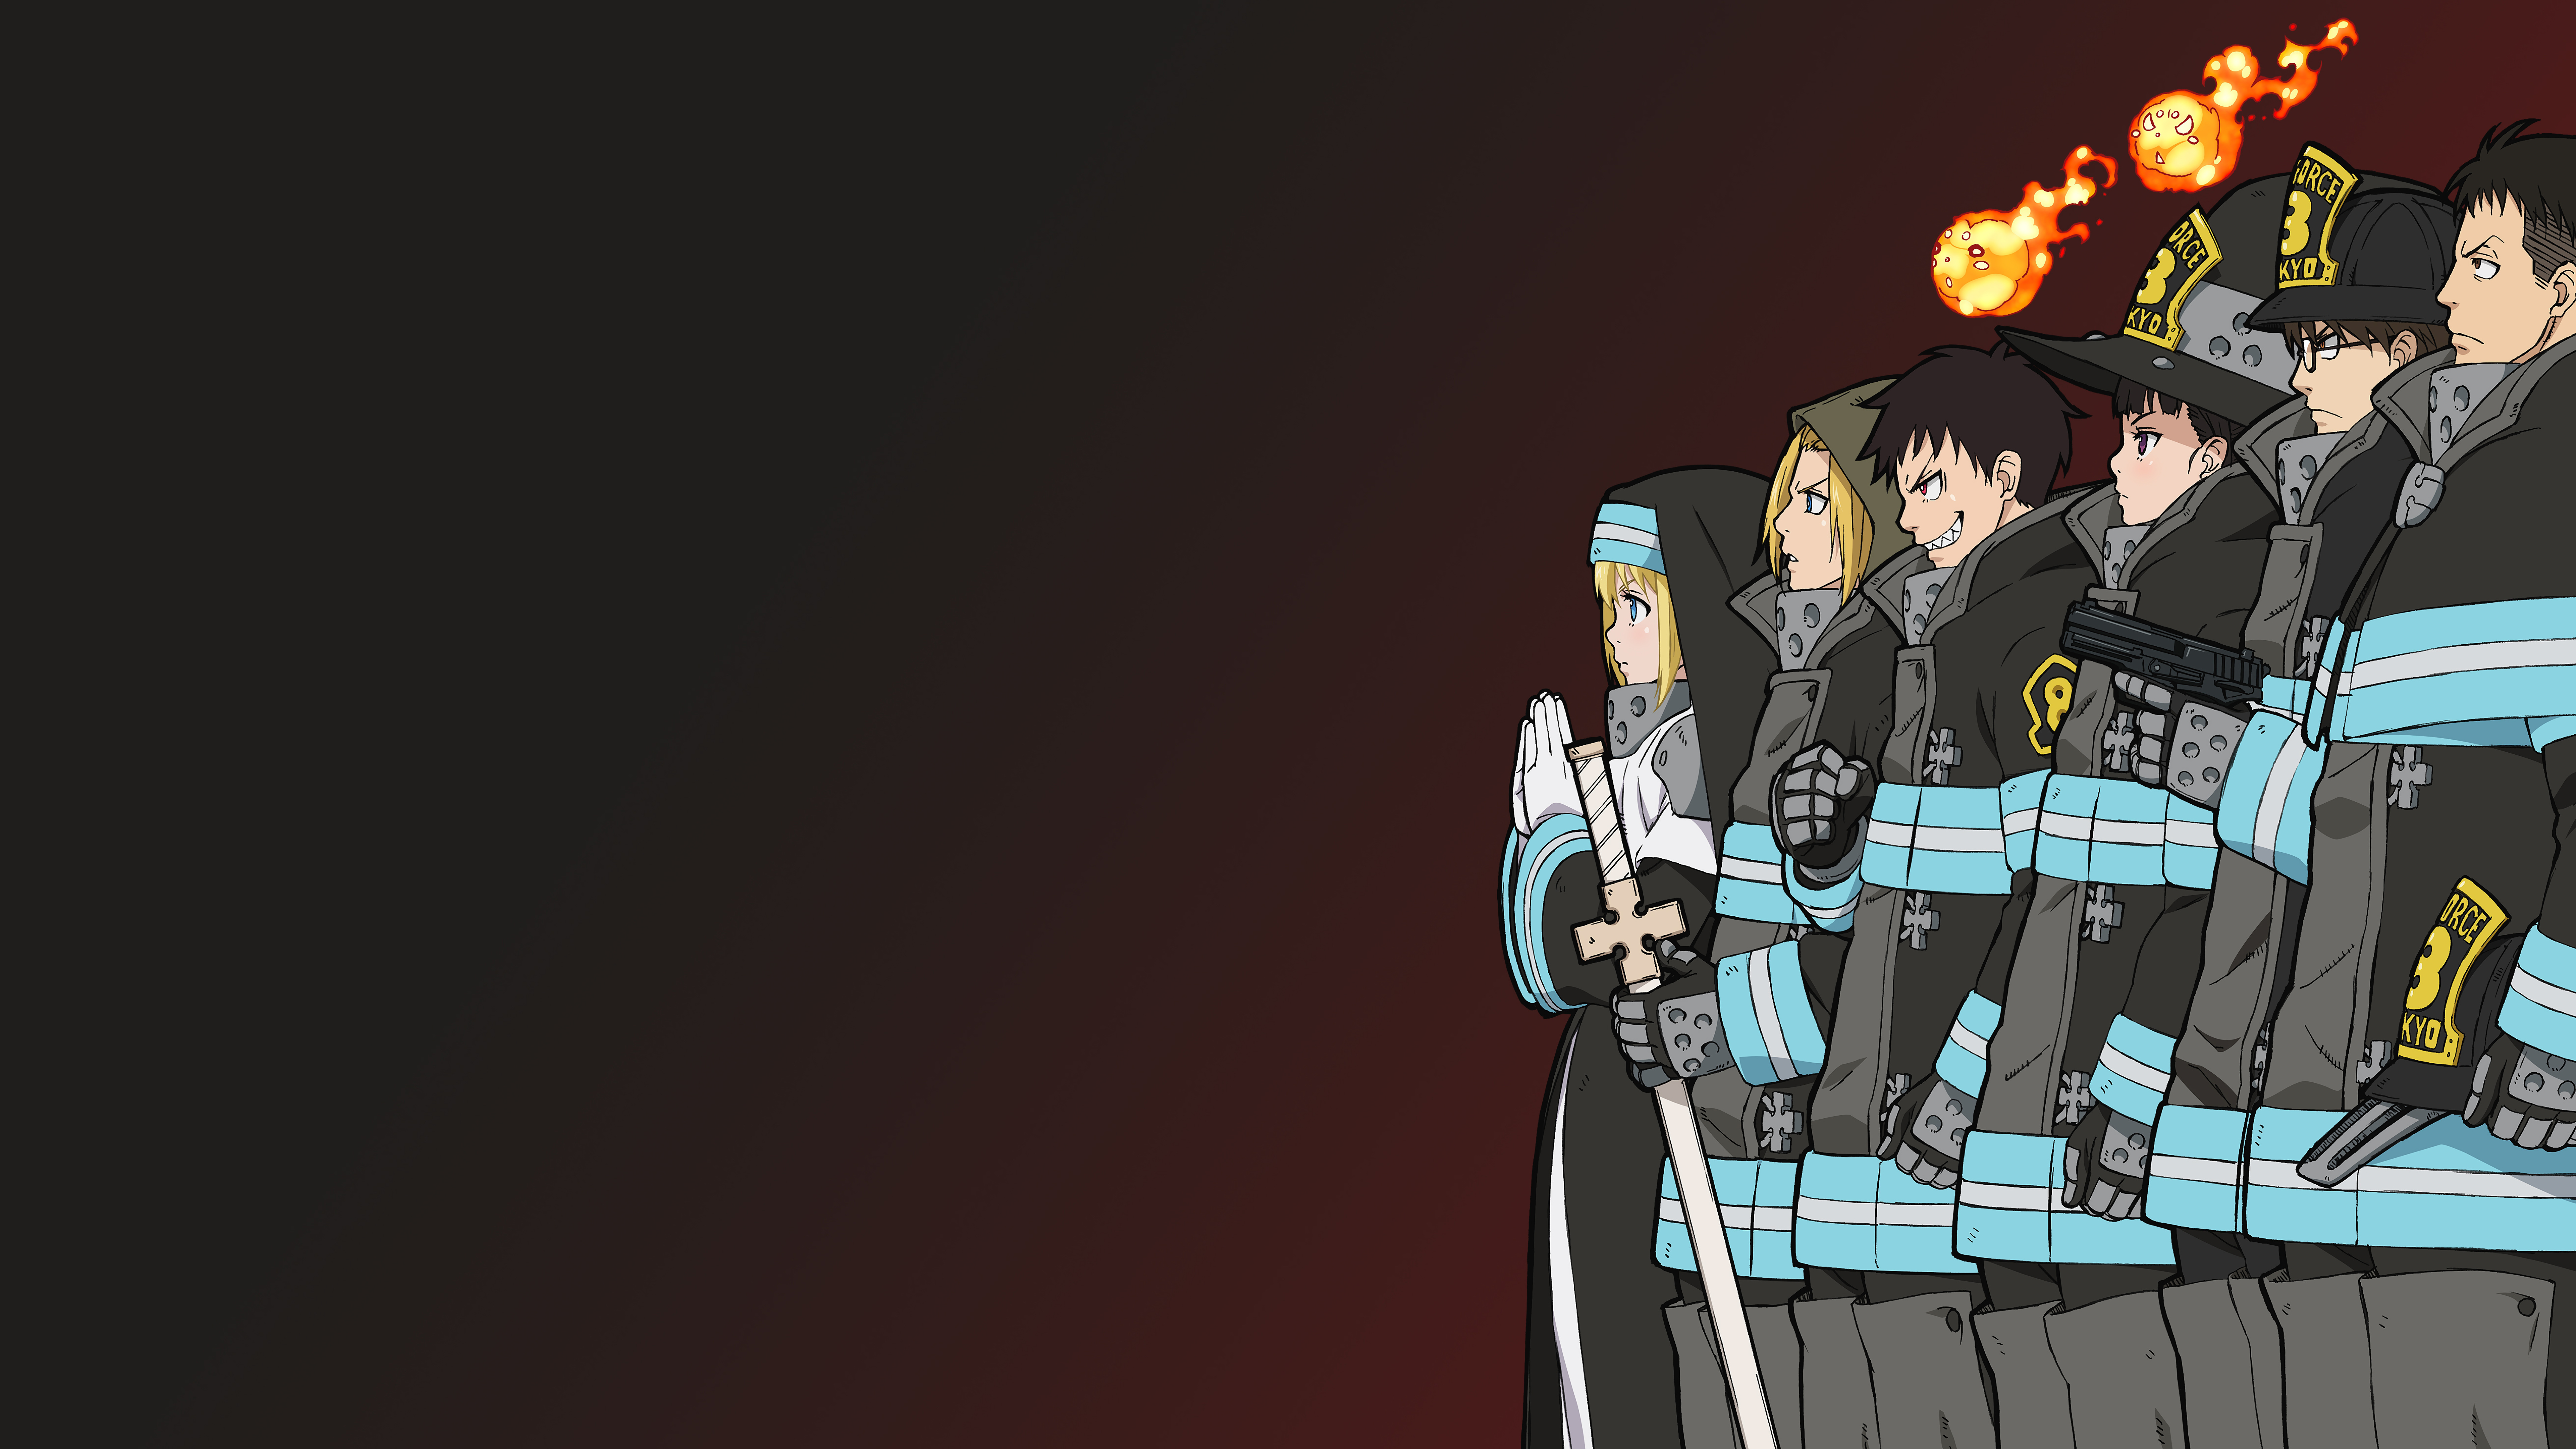 Fire Force Wallpaper Hd 1920x1080 Anime Wallpapers Fire force ringtones and wallpapers. anime wallpapers